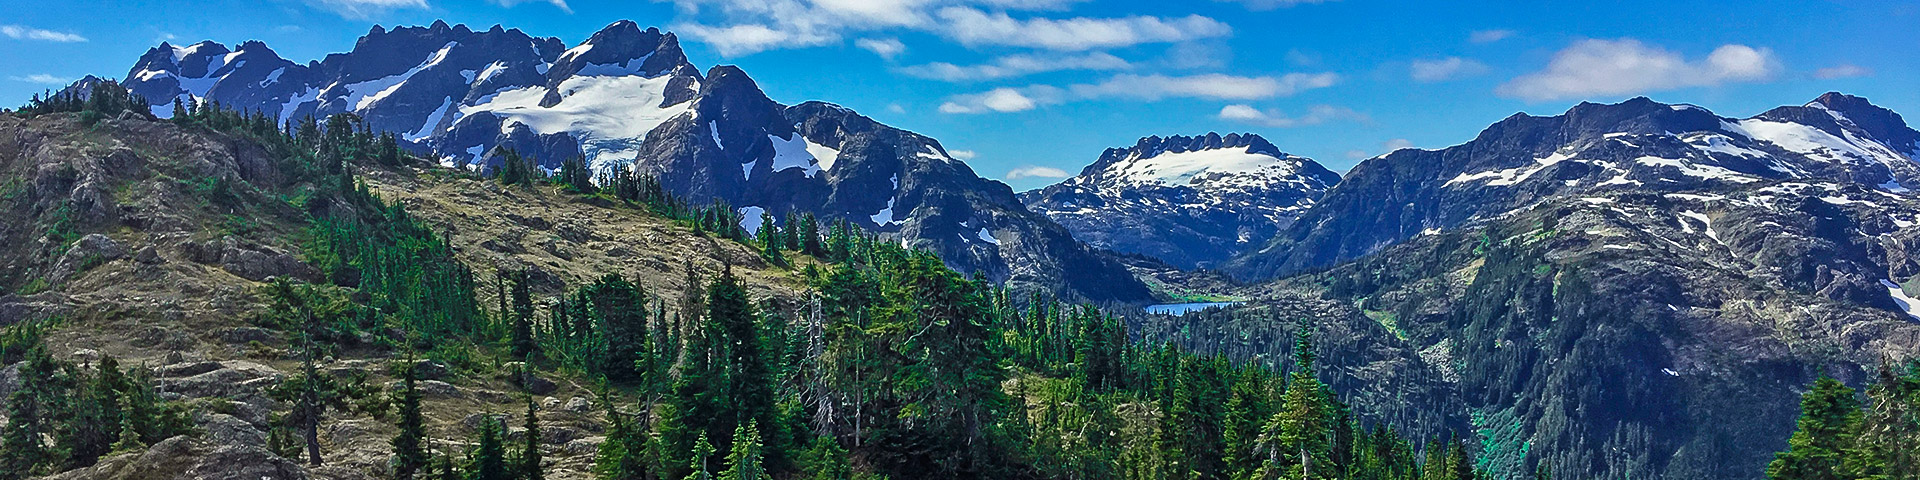 Panoramic views from the Flower Ridge trail hike in Strathcona Provincial Park, Vancouver Island